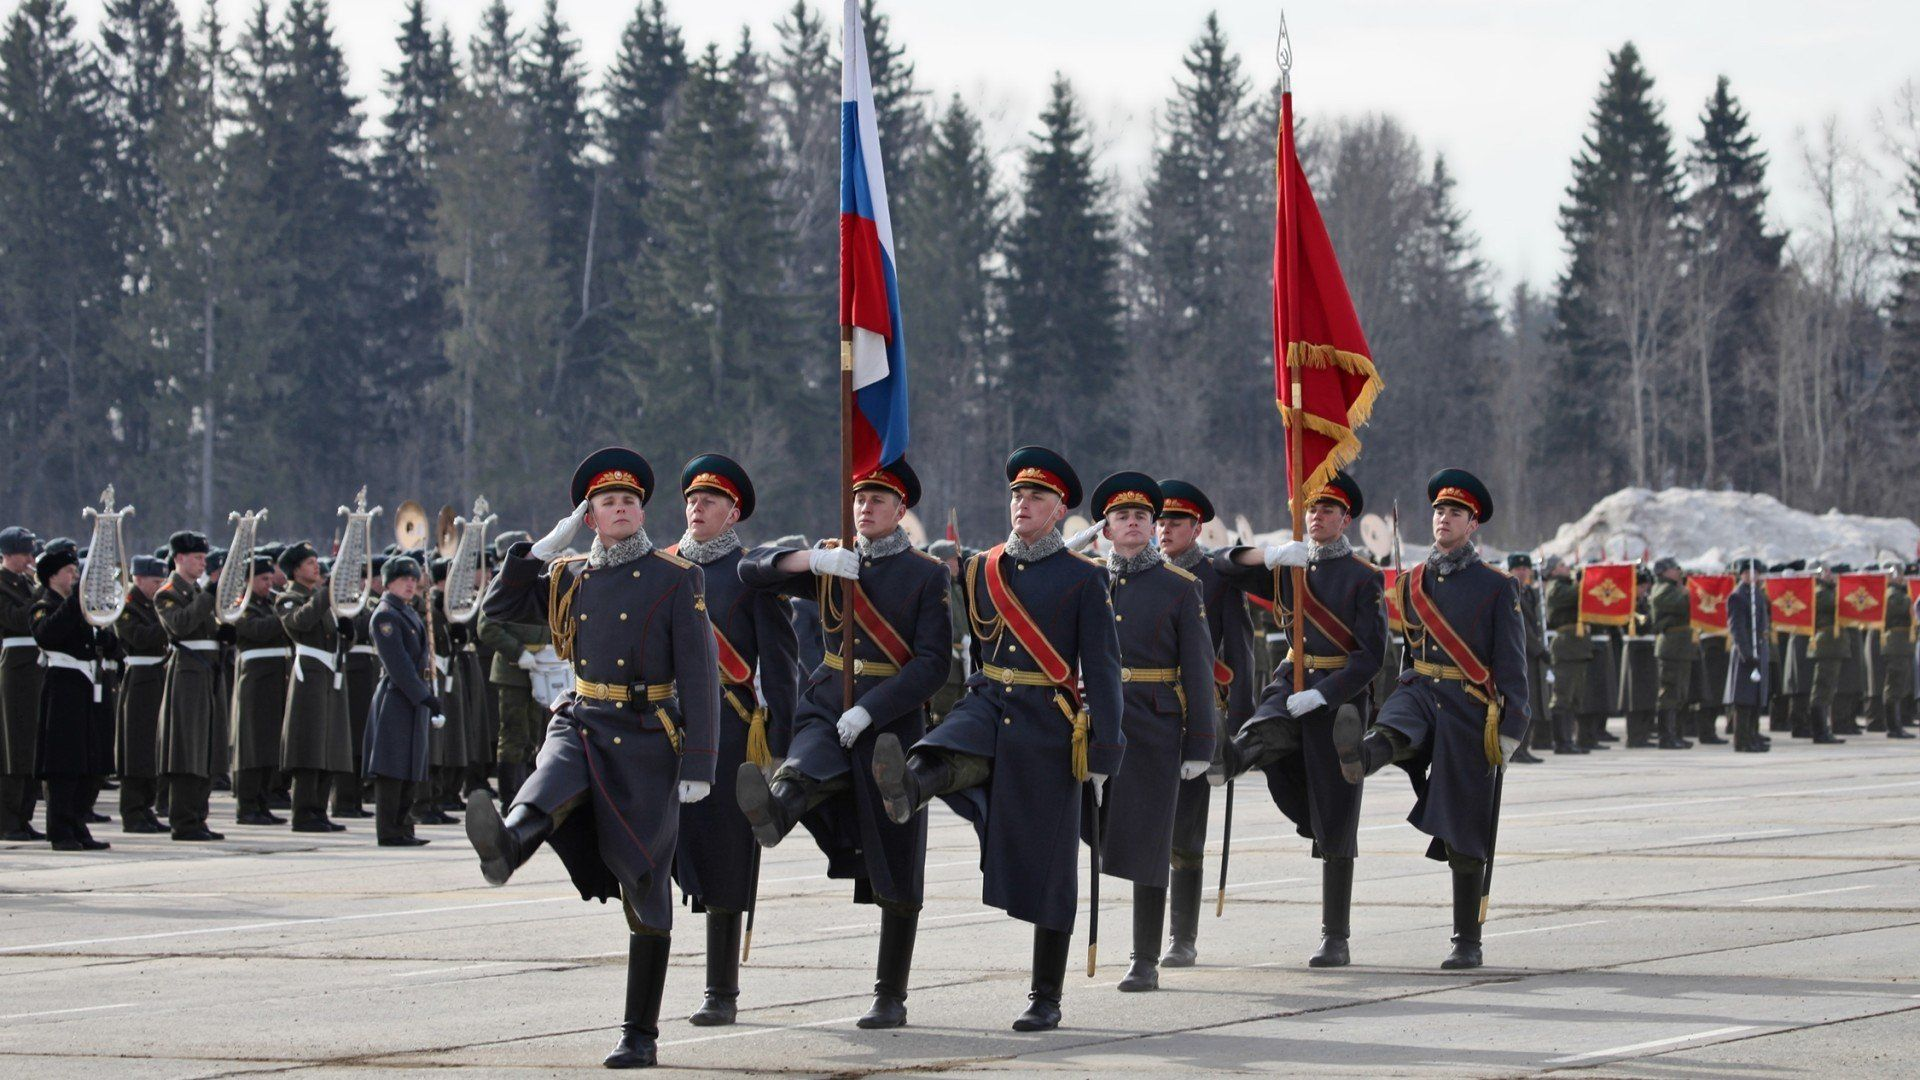 1920x1080 Russian military army soliders wallpaper | 1920x1080 | 497567 ...